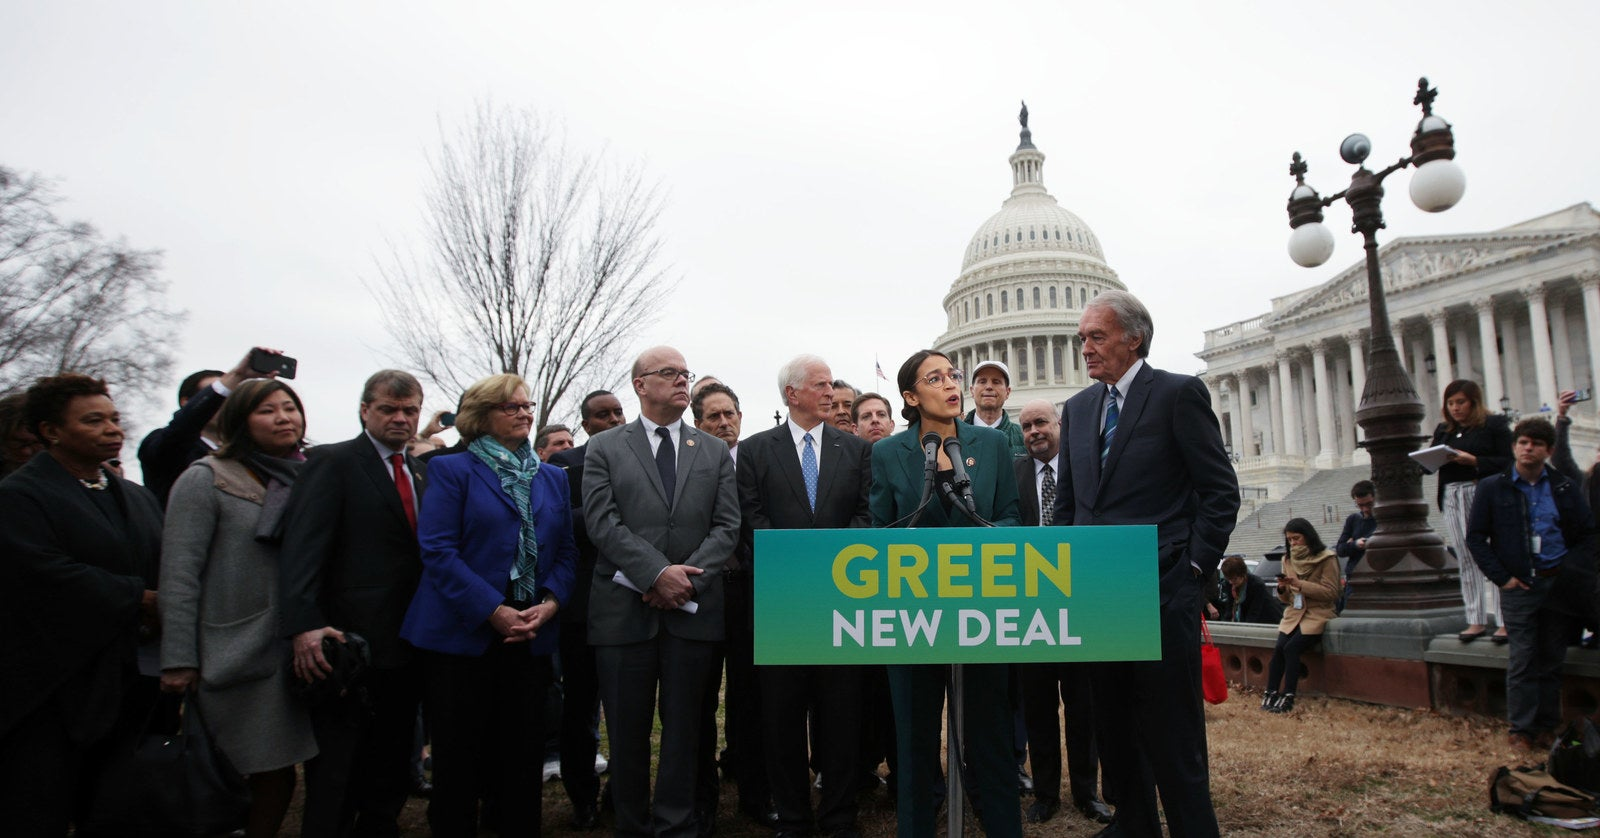 """Republicans Plan To """"Wage War"""" Against The Green New Deal For The 2020 Elections"""